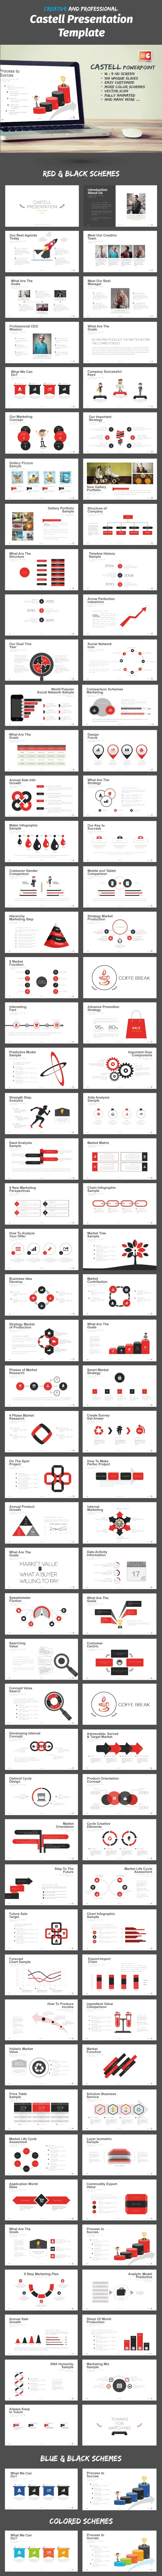 Castell Powerpoint Template - Business PowerPoint Templates